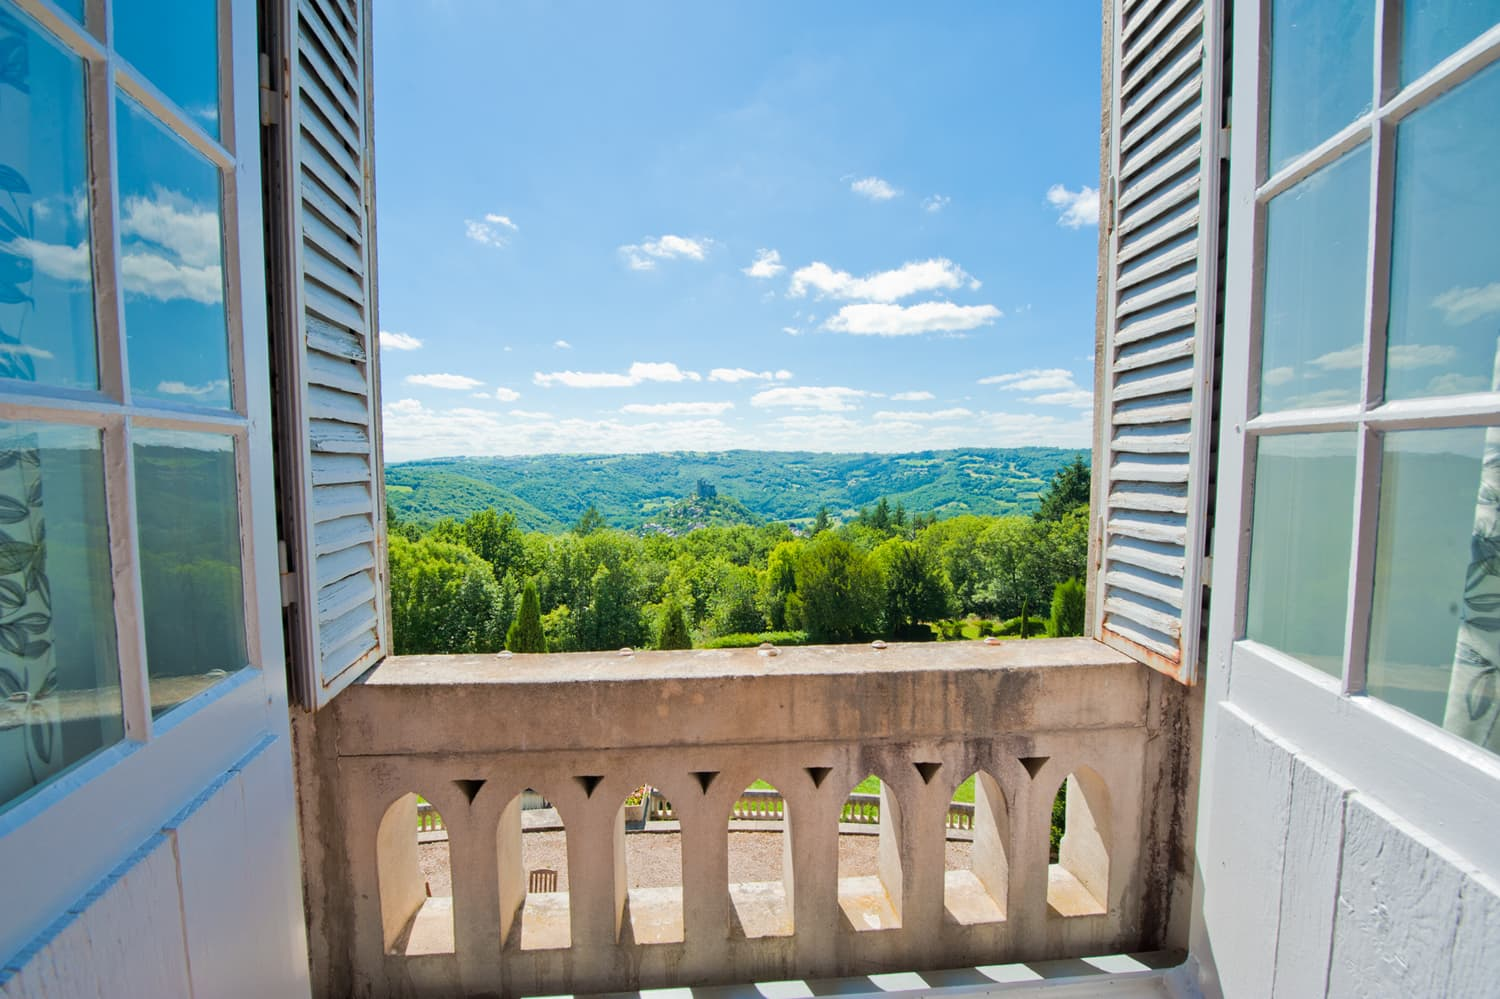 View from château bedroom window